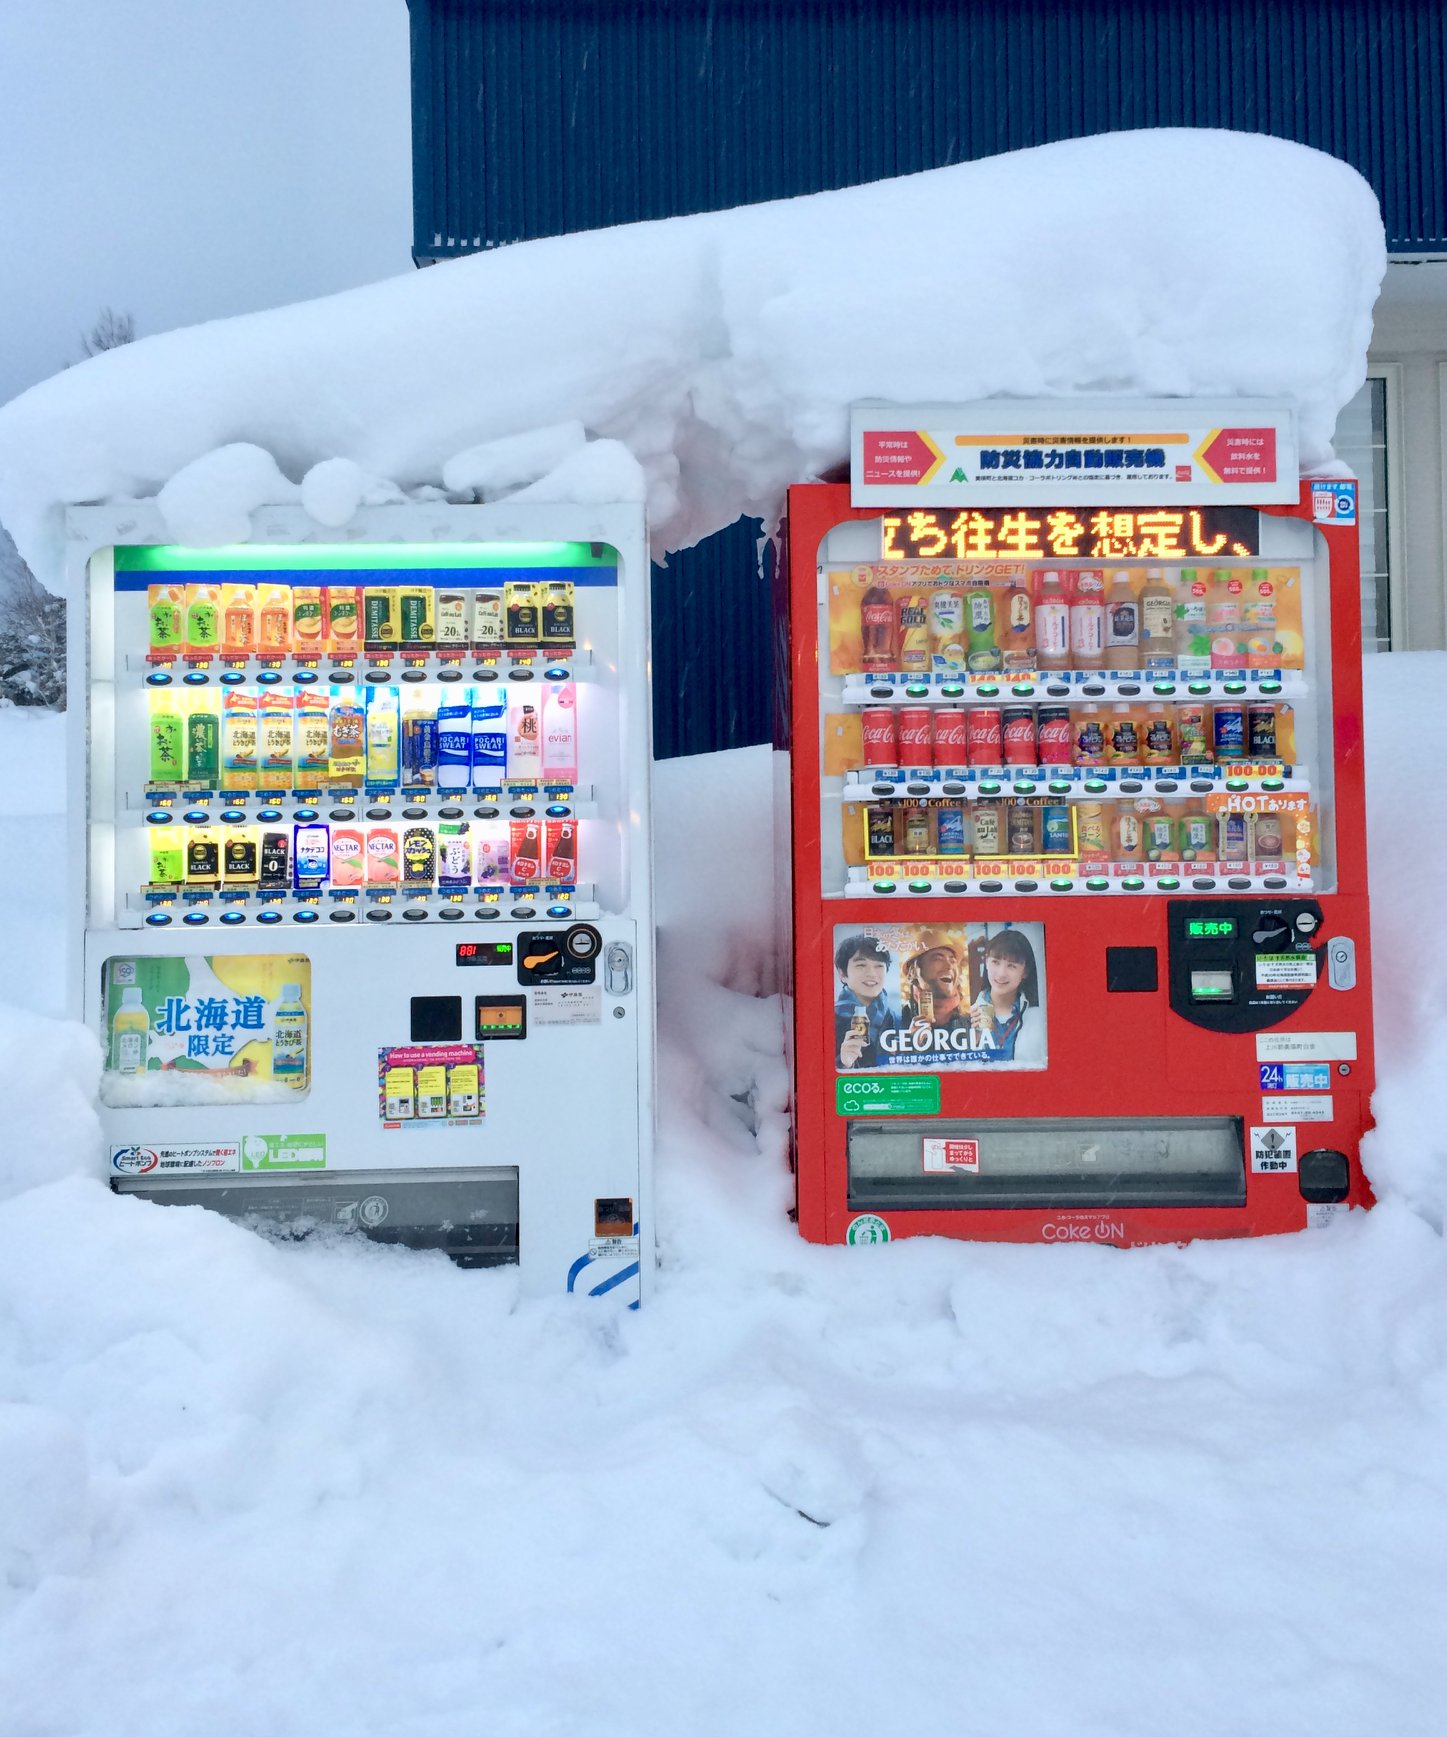 More vending machines in the snow. These look like they're sheltering together.  (photo: Ulana Switucha)